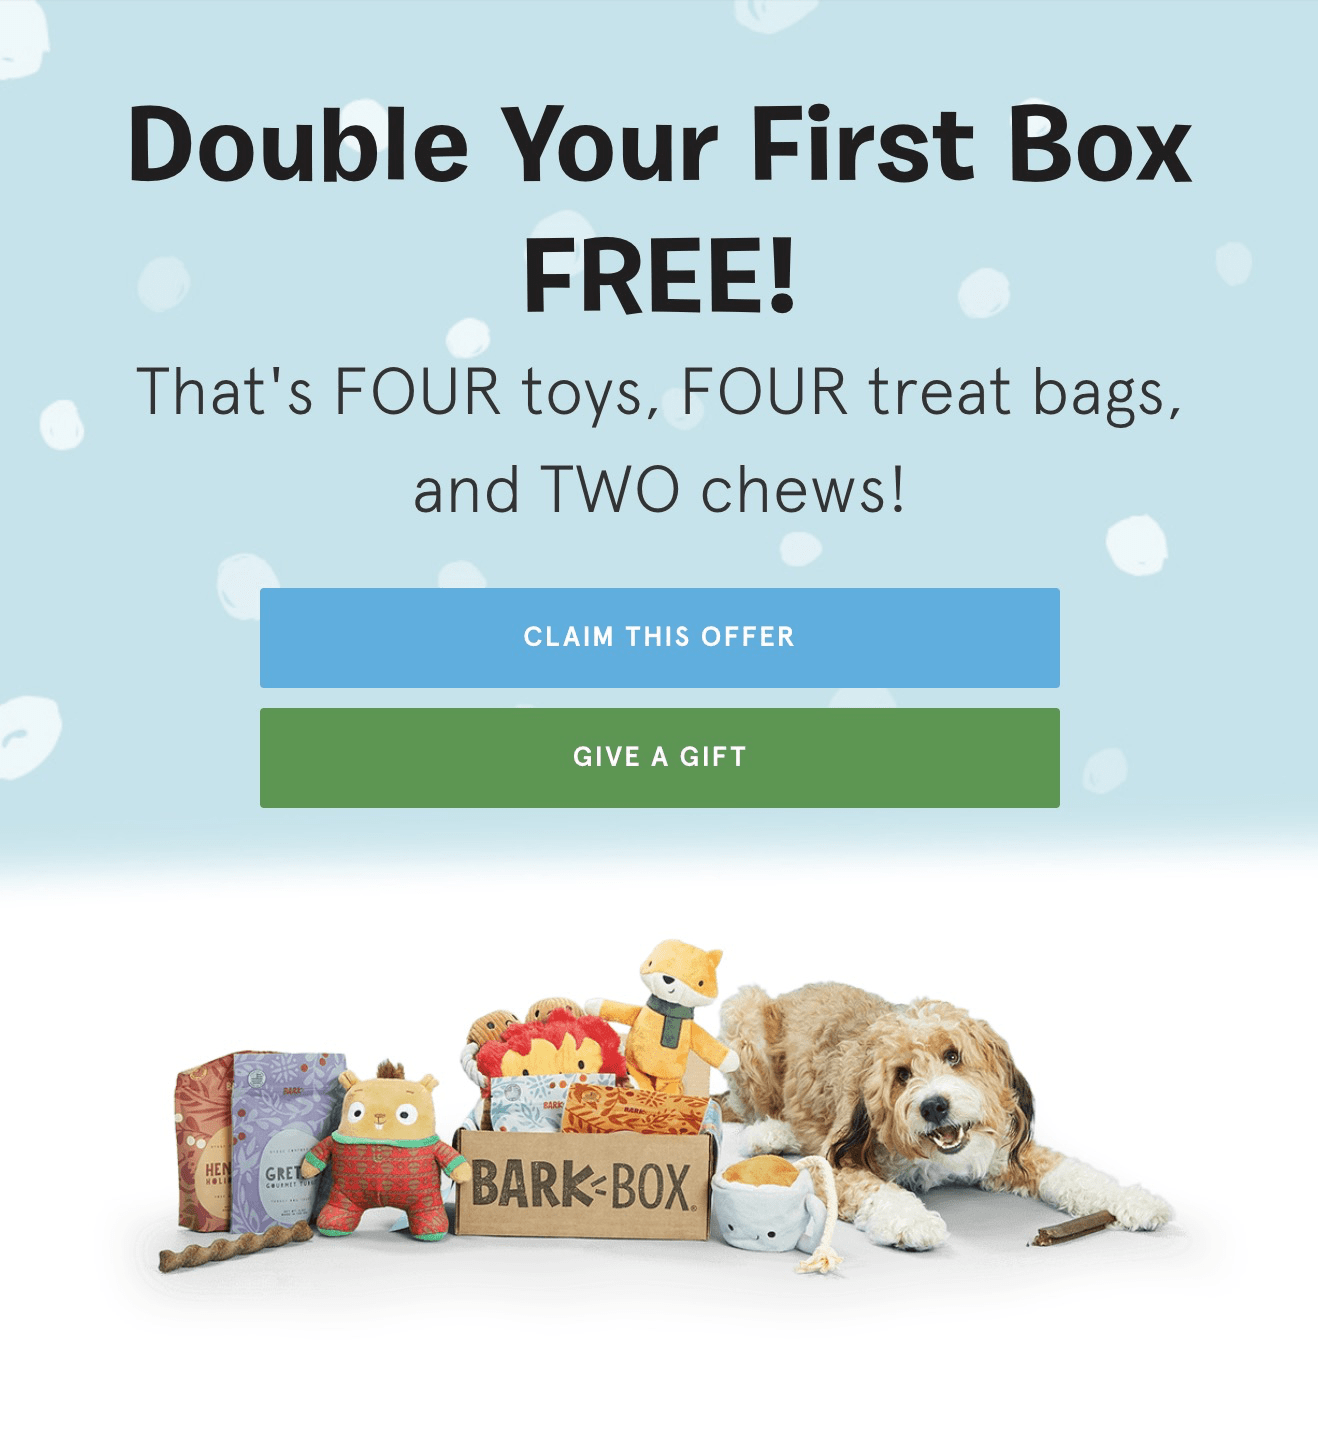 BarkBox Coupon: Double Your First Box for FREE with Subscription!